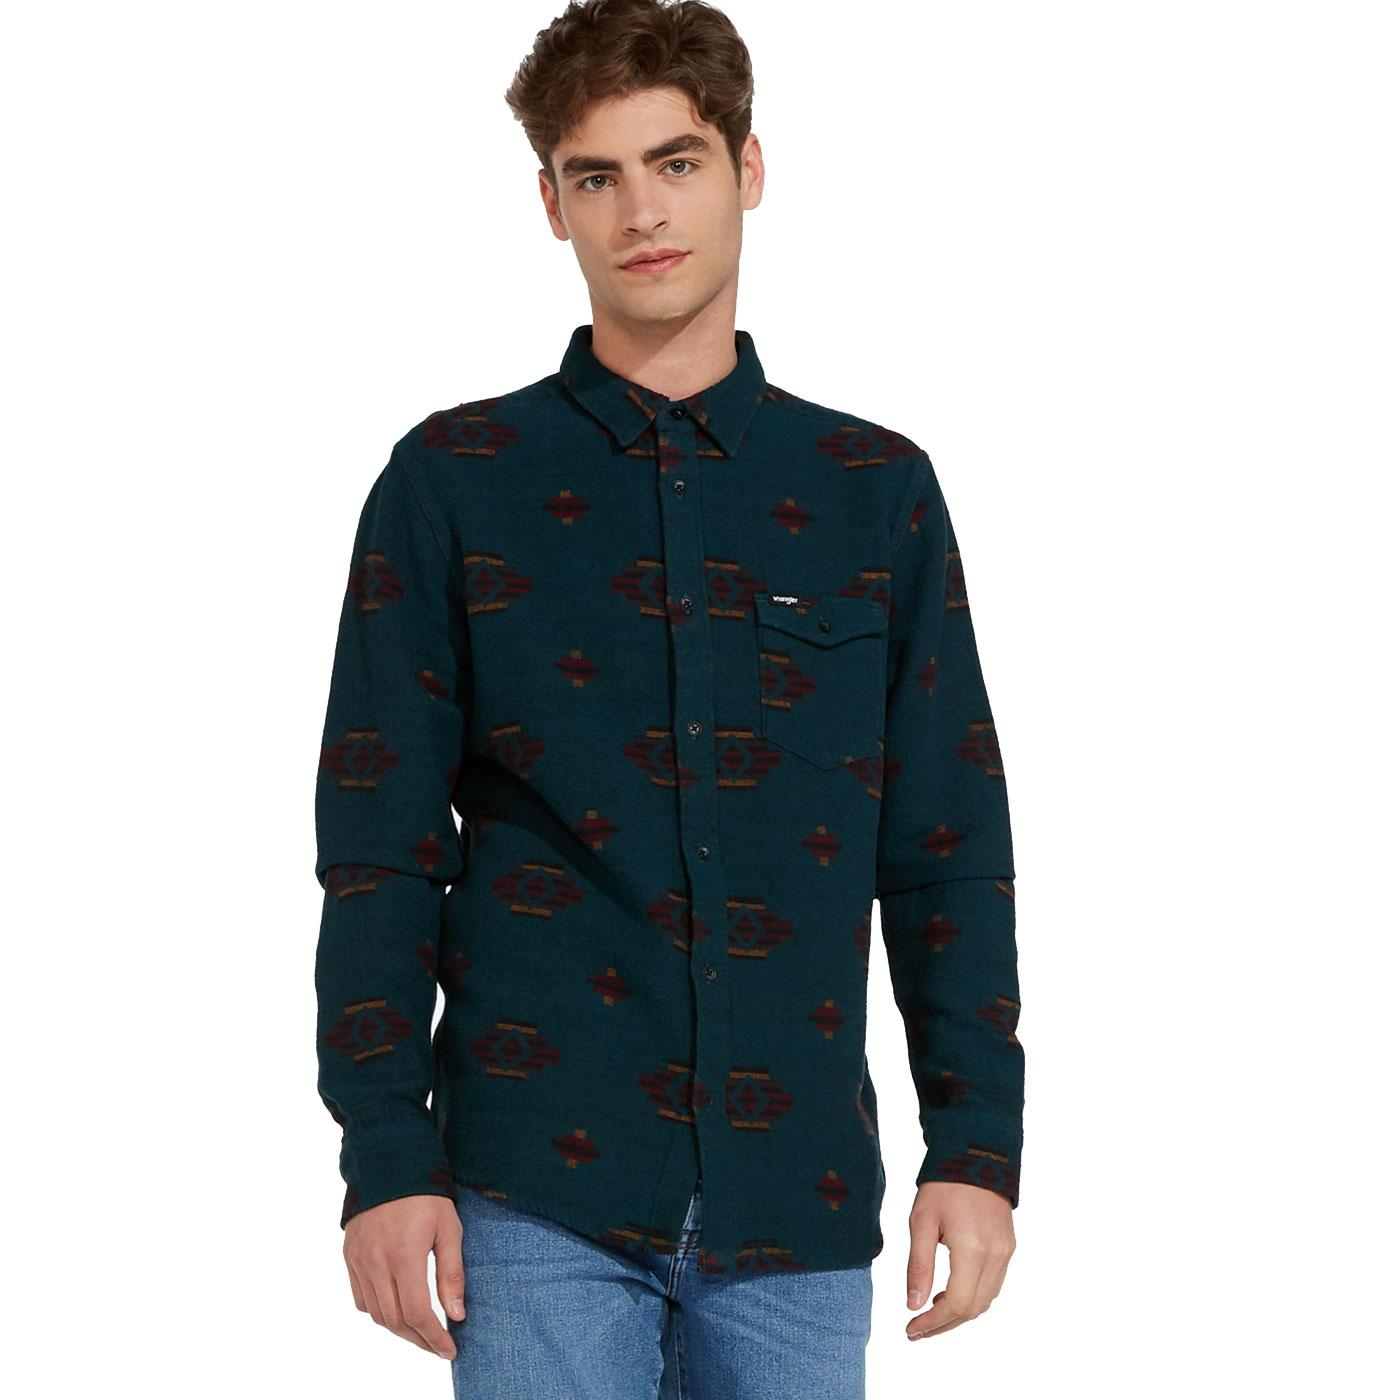 WRANGLER Mens Seventies Retro Print 1 Pocket Shirt